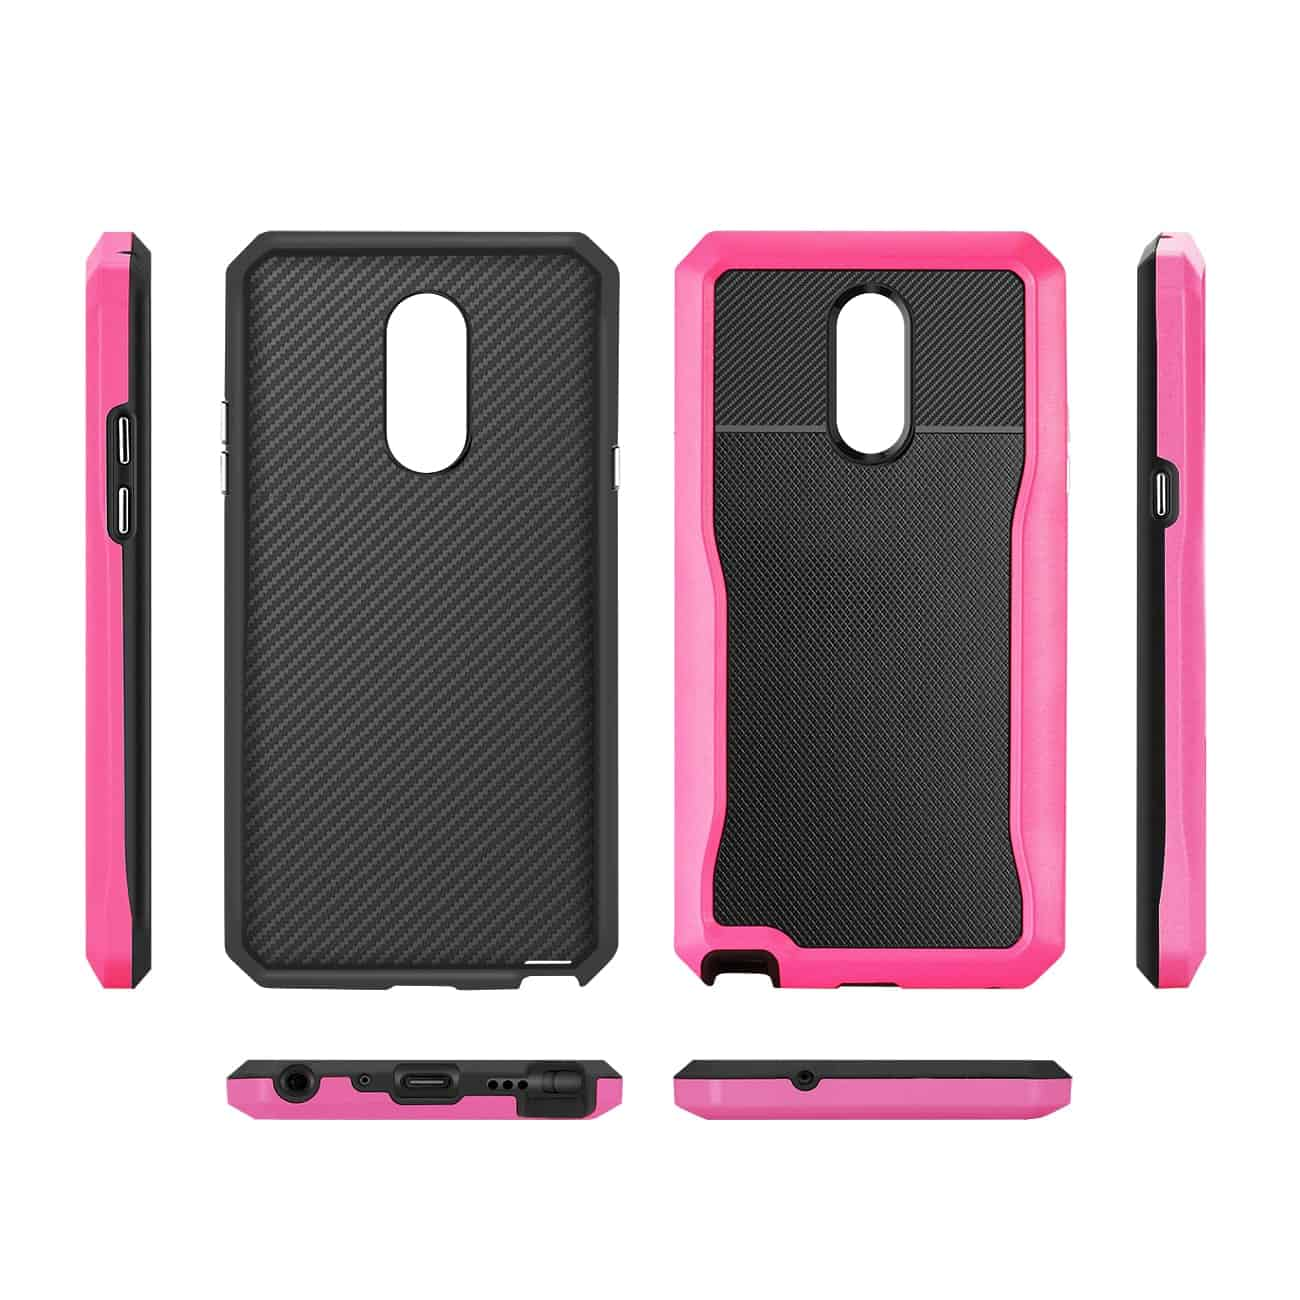 LG STYLO 4 Full Coverage Shockproof Case In Pink